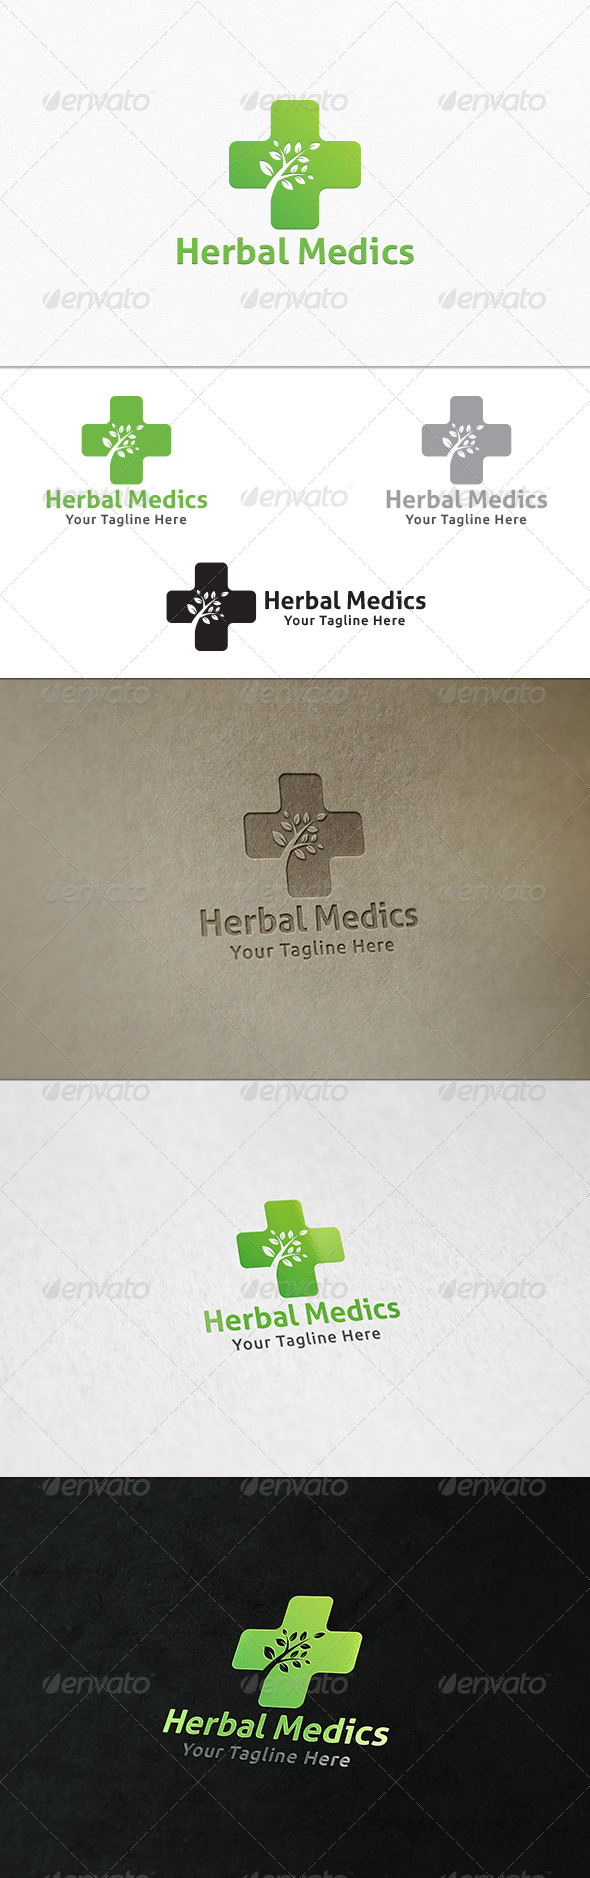 GraphicRiver Herbal Medics Logo Template 8023965